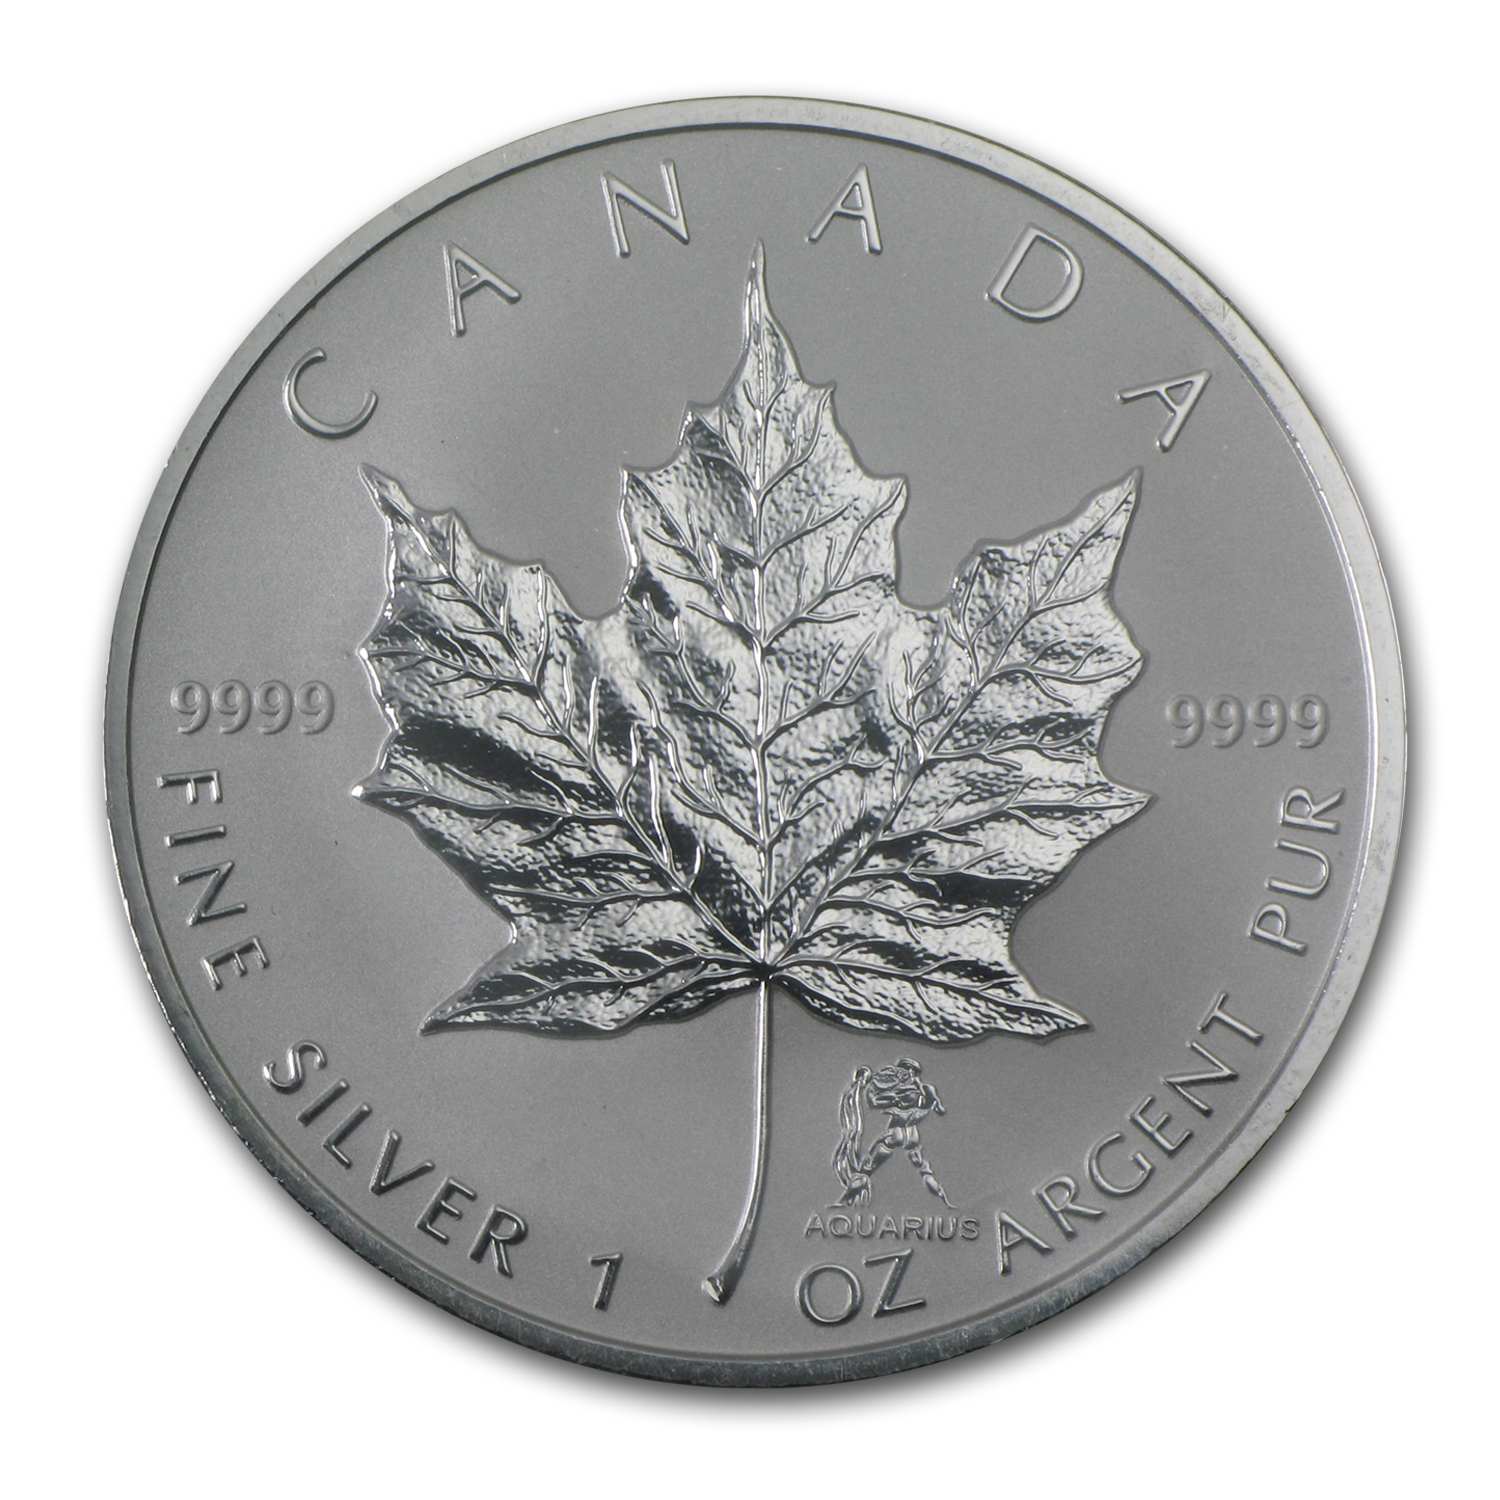 2004 Canada 1 oz Silver Maple Leaf Aquarius Zodiac Privy